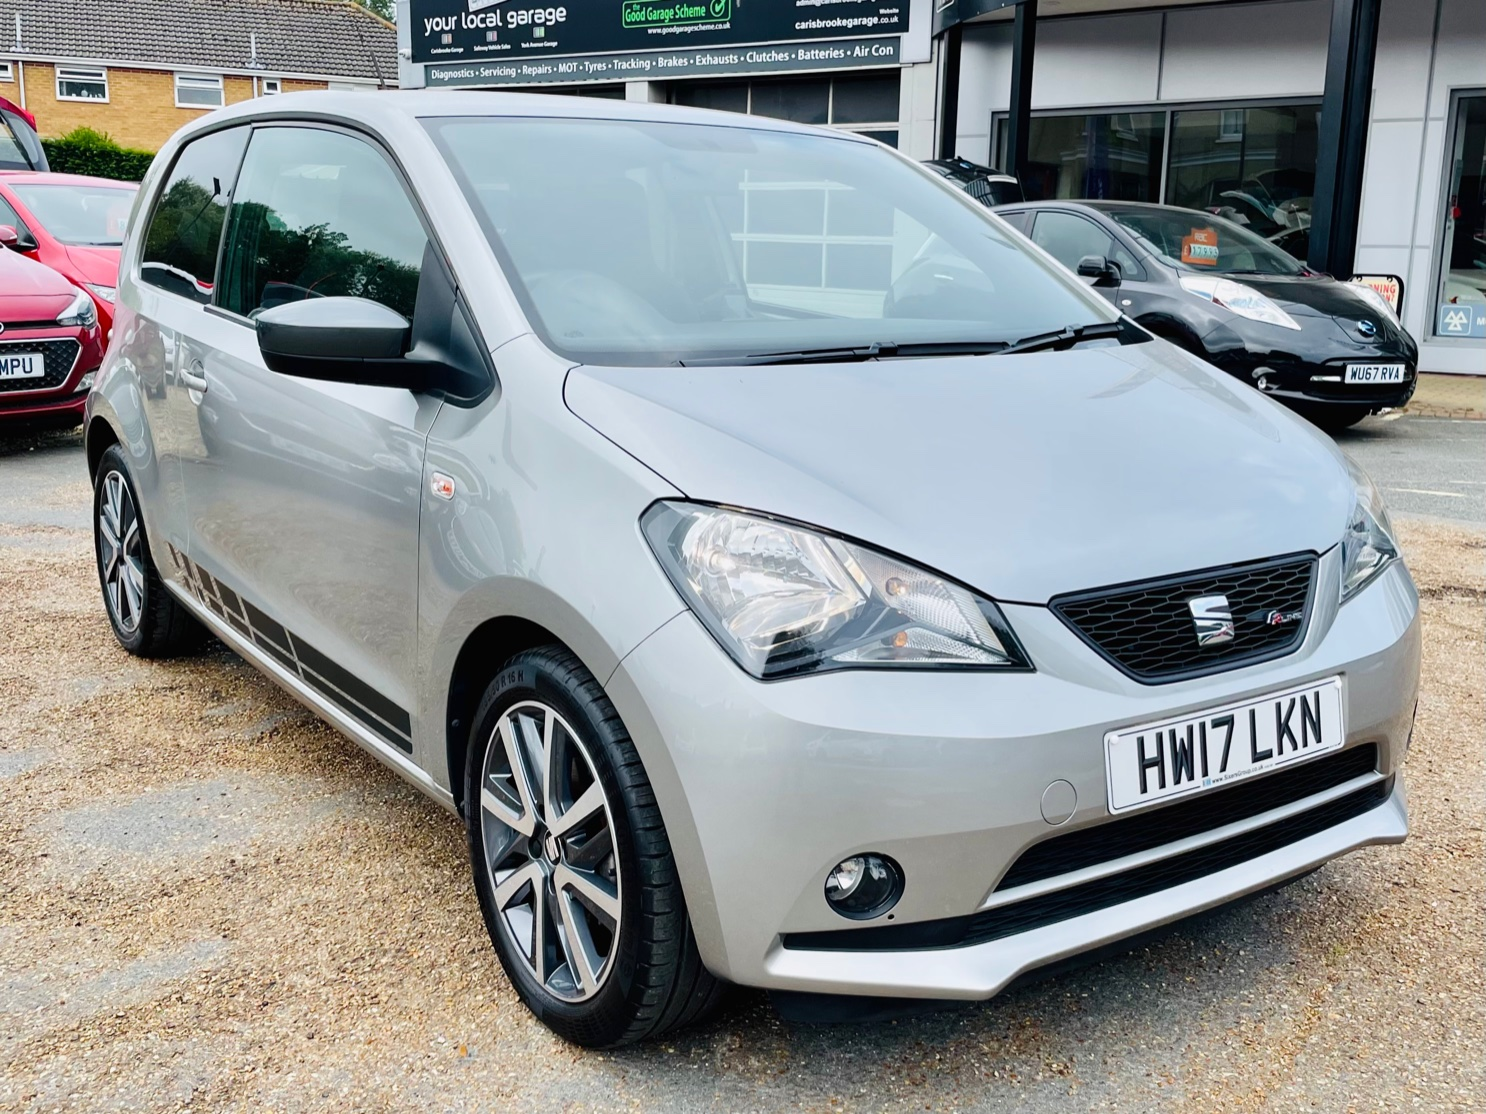 Car For Sale Seat Mii - HW17LKN Sixers Group Image #1